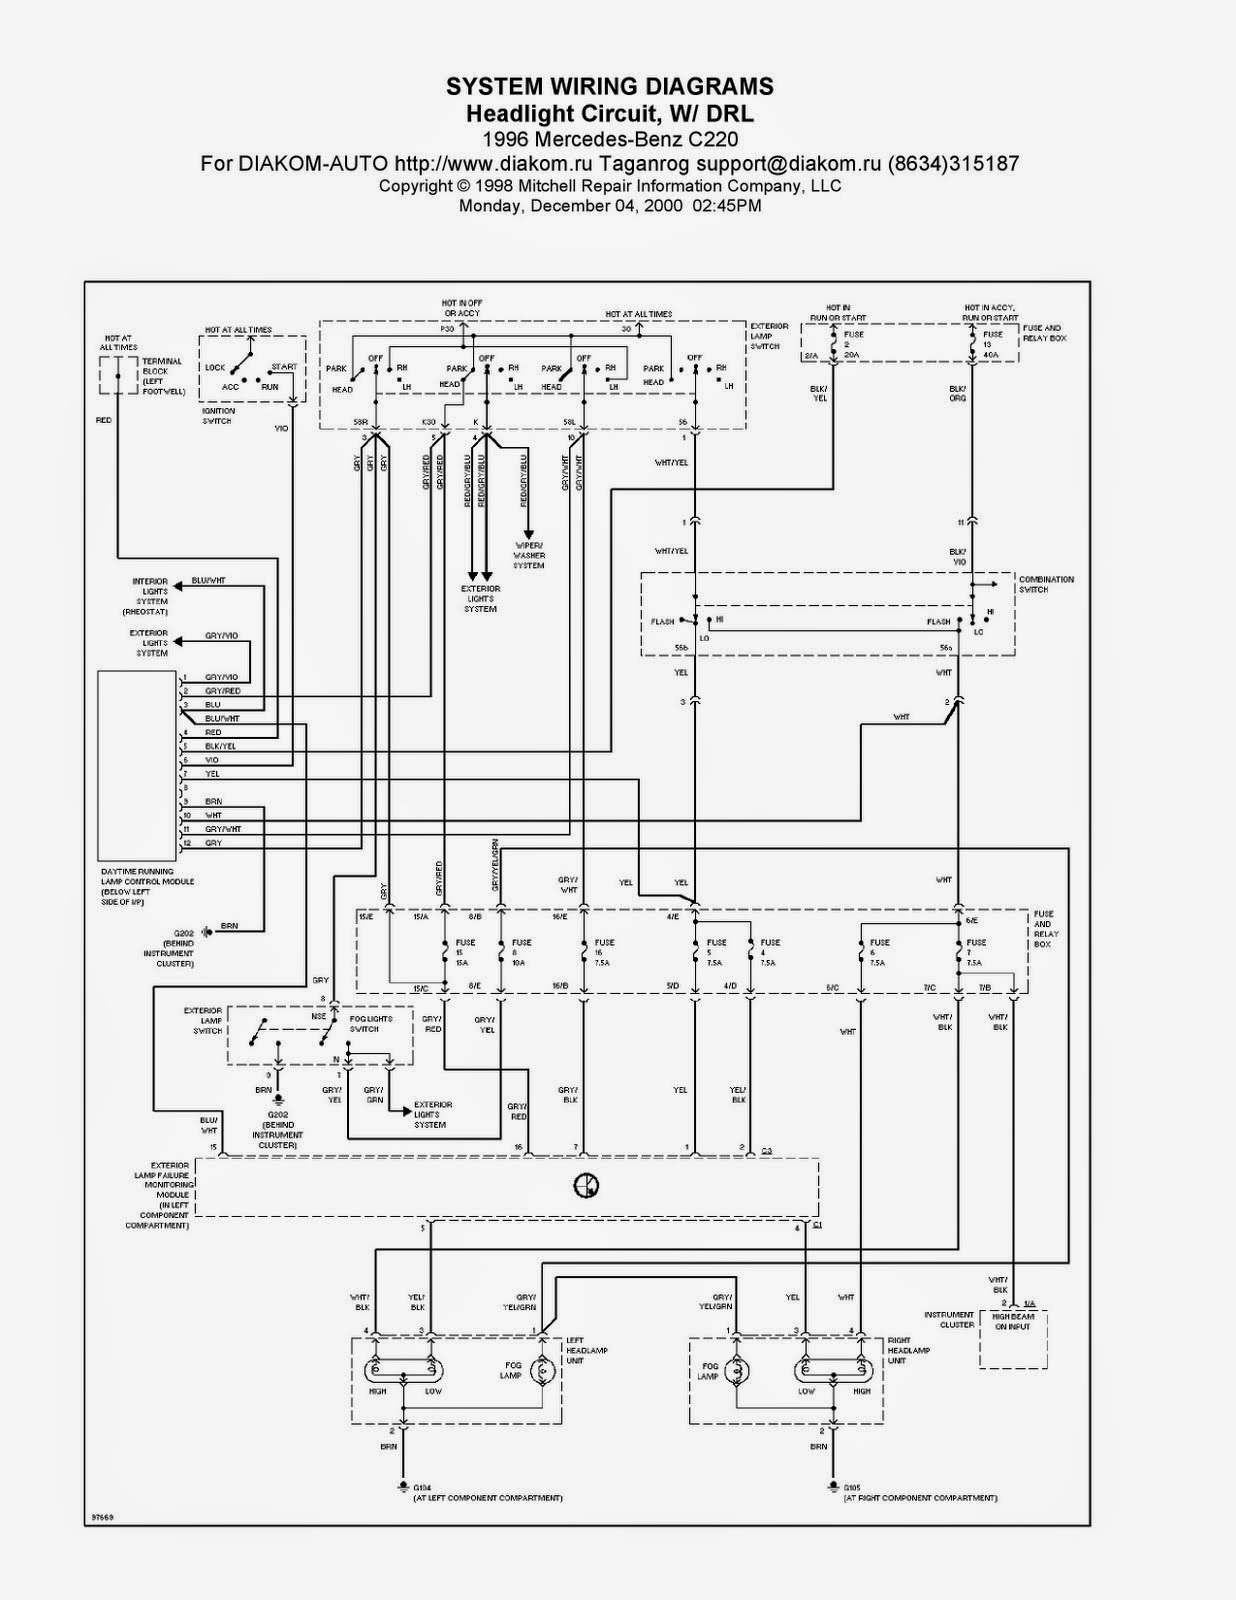 Honda Gx160 Electric Start Wiring Diagram from schematron.org